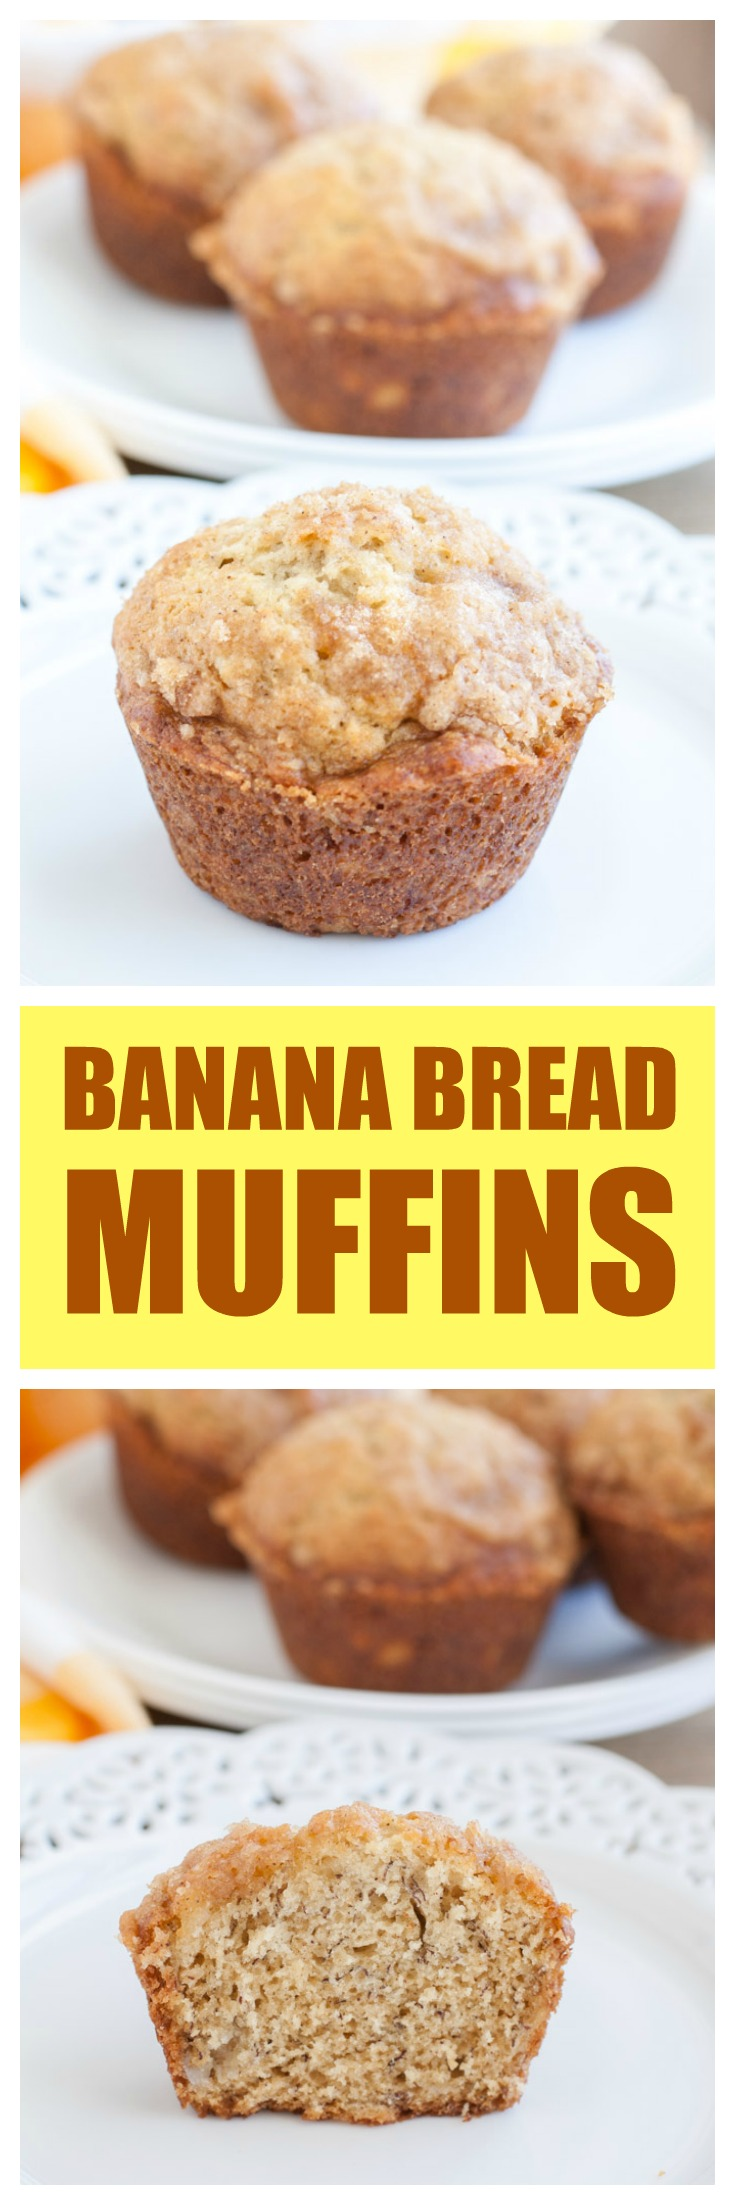 Banana Bread Muffins taste just like a loaf of banana bread. They are topped with a cinnamon crumble! #BananaBreadMuffins #BananaBread #muffins